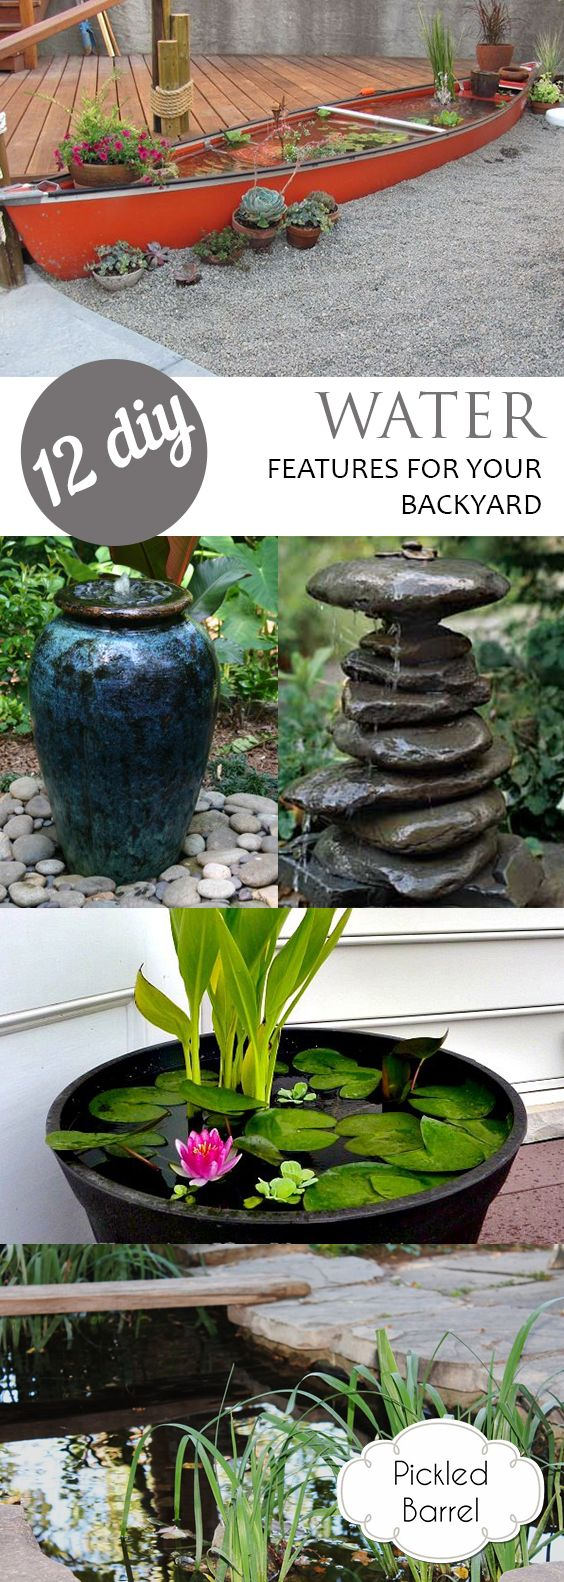 12 DIY Water Features for Your Backyard